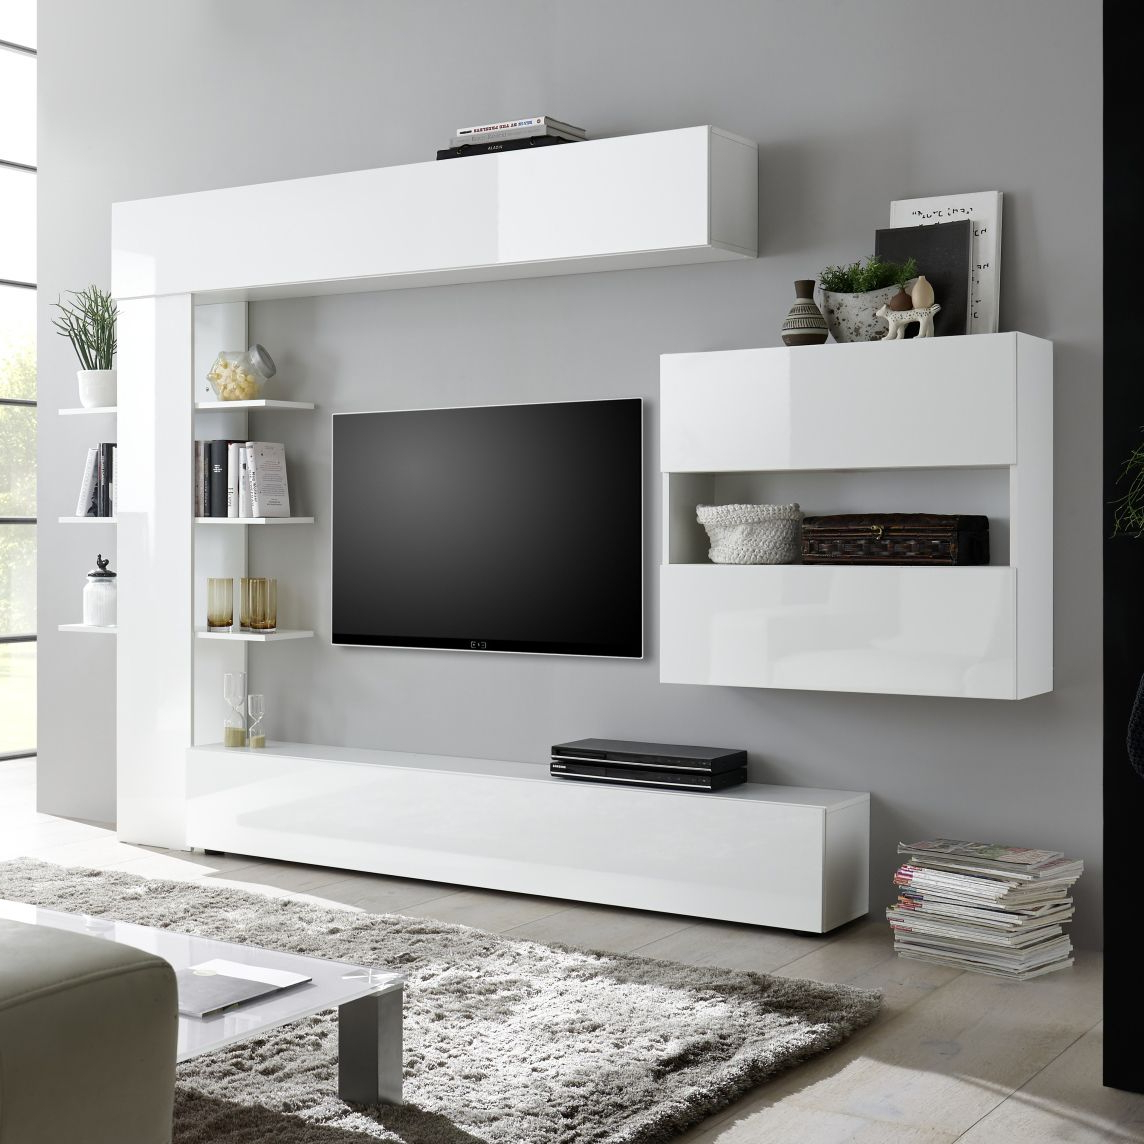 Contemporary Tv Wall Unit – Sorano – Lc Spa – Oak With High Glass Modern Entertainment Tv Stands For Living Room Bedroom (View 3 of 20)